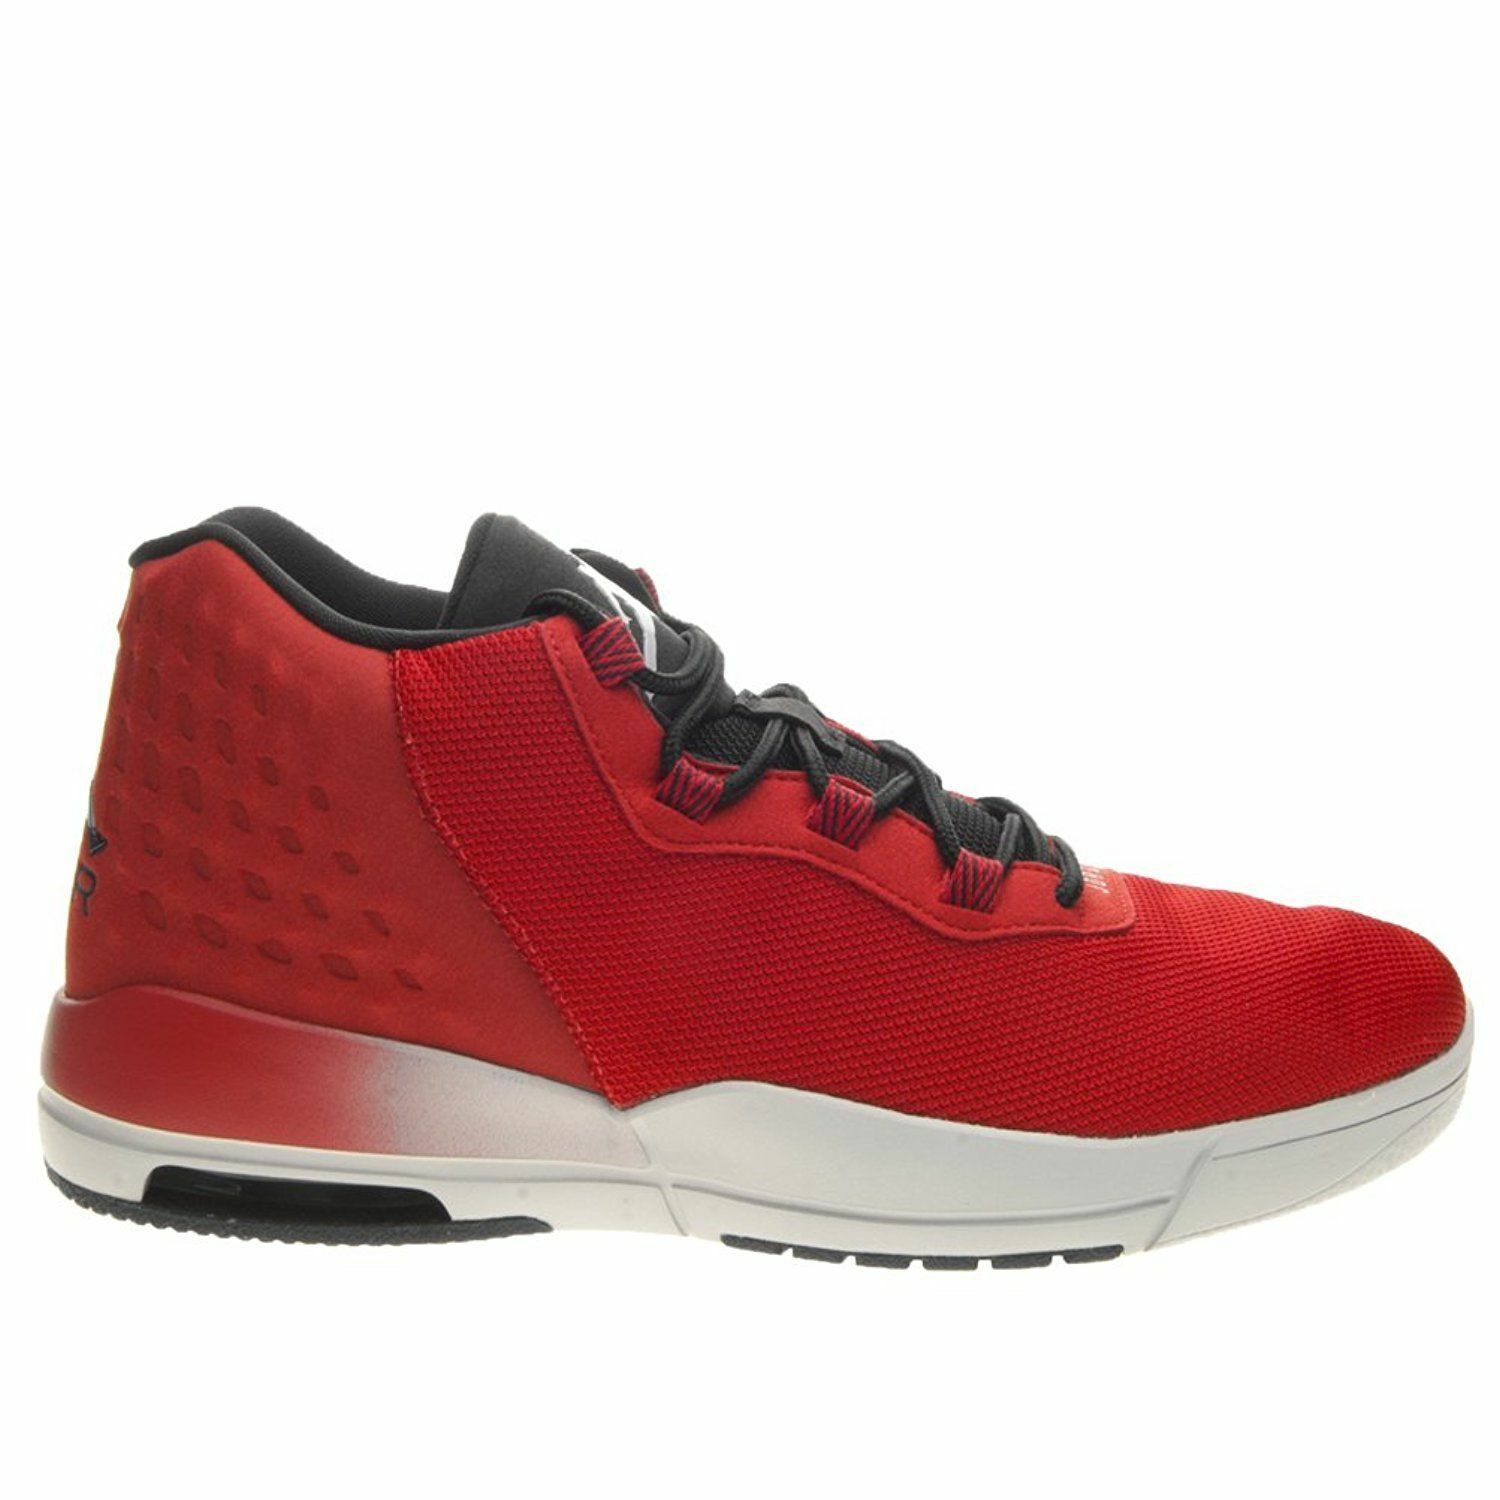 Nike Jordan Academy Mens Basketball Shoes Red Black 844515 600 SIZE 10 - 11.5